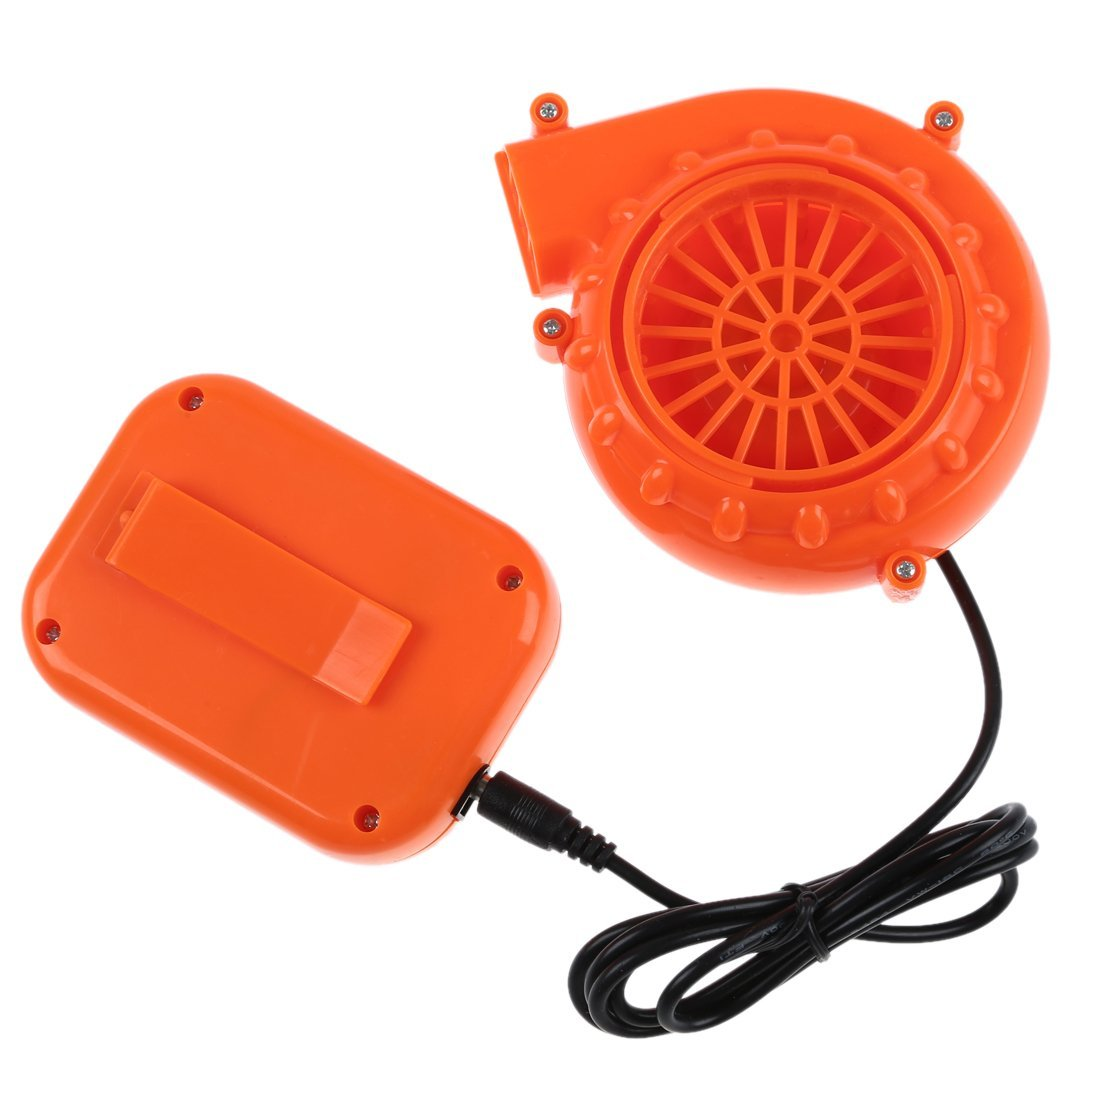 Mini Fan - TOOGOO(R) Mini Fan Blower for Mascot Head Infl...